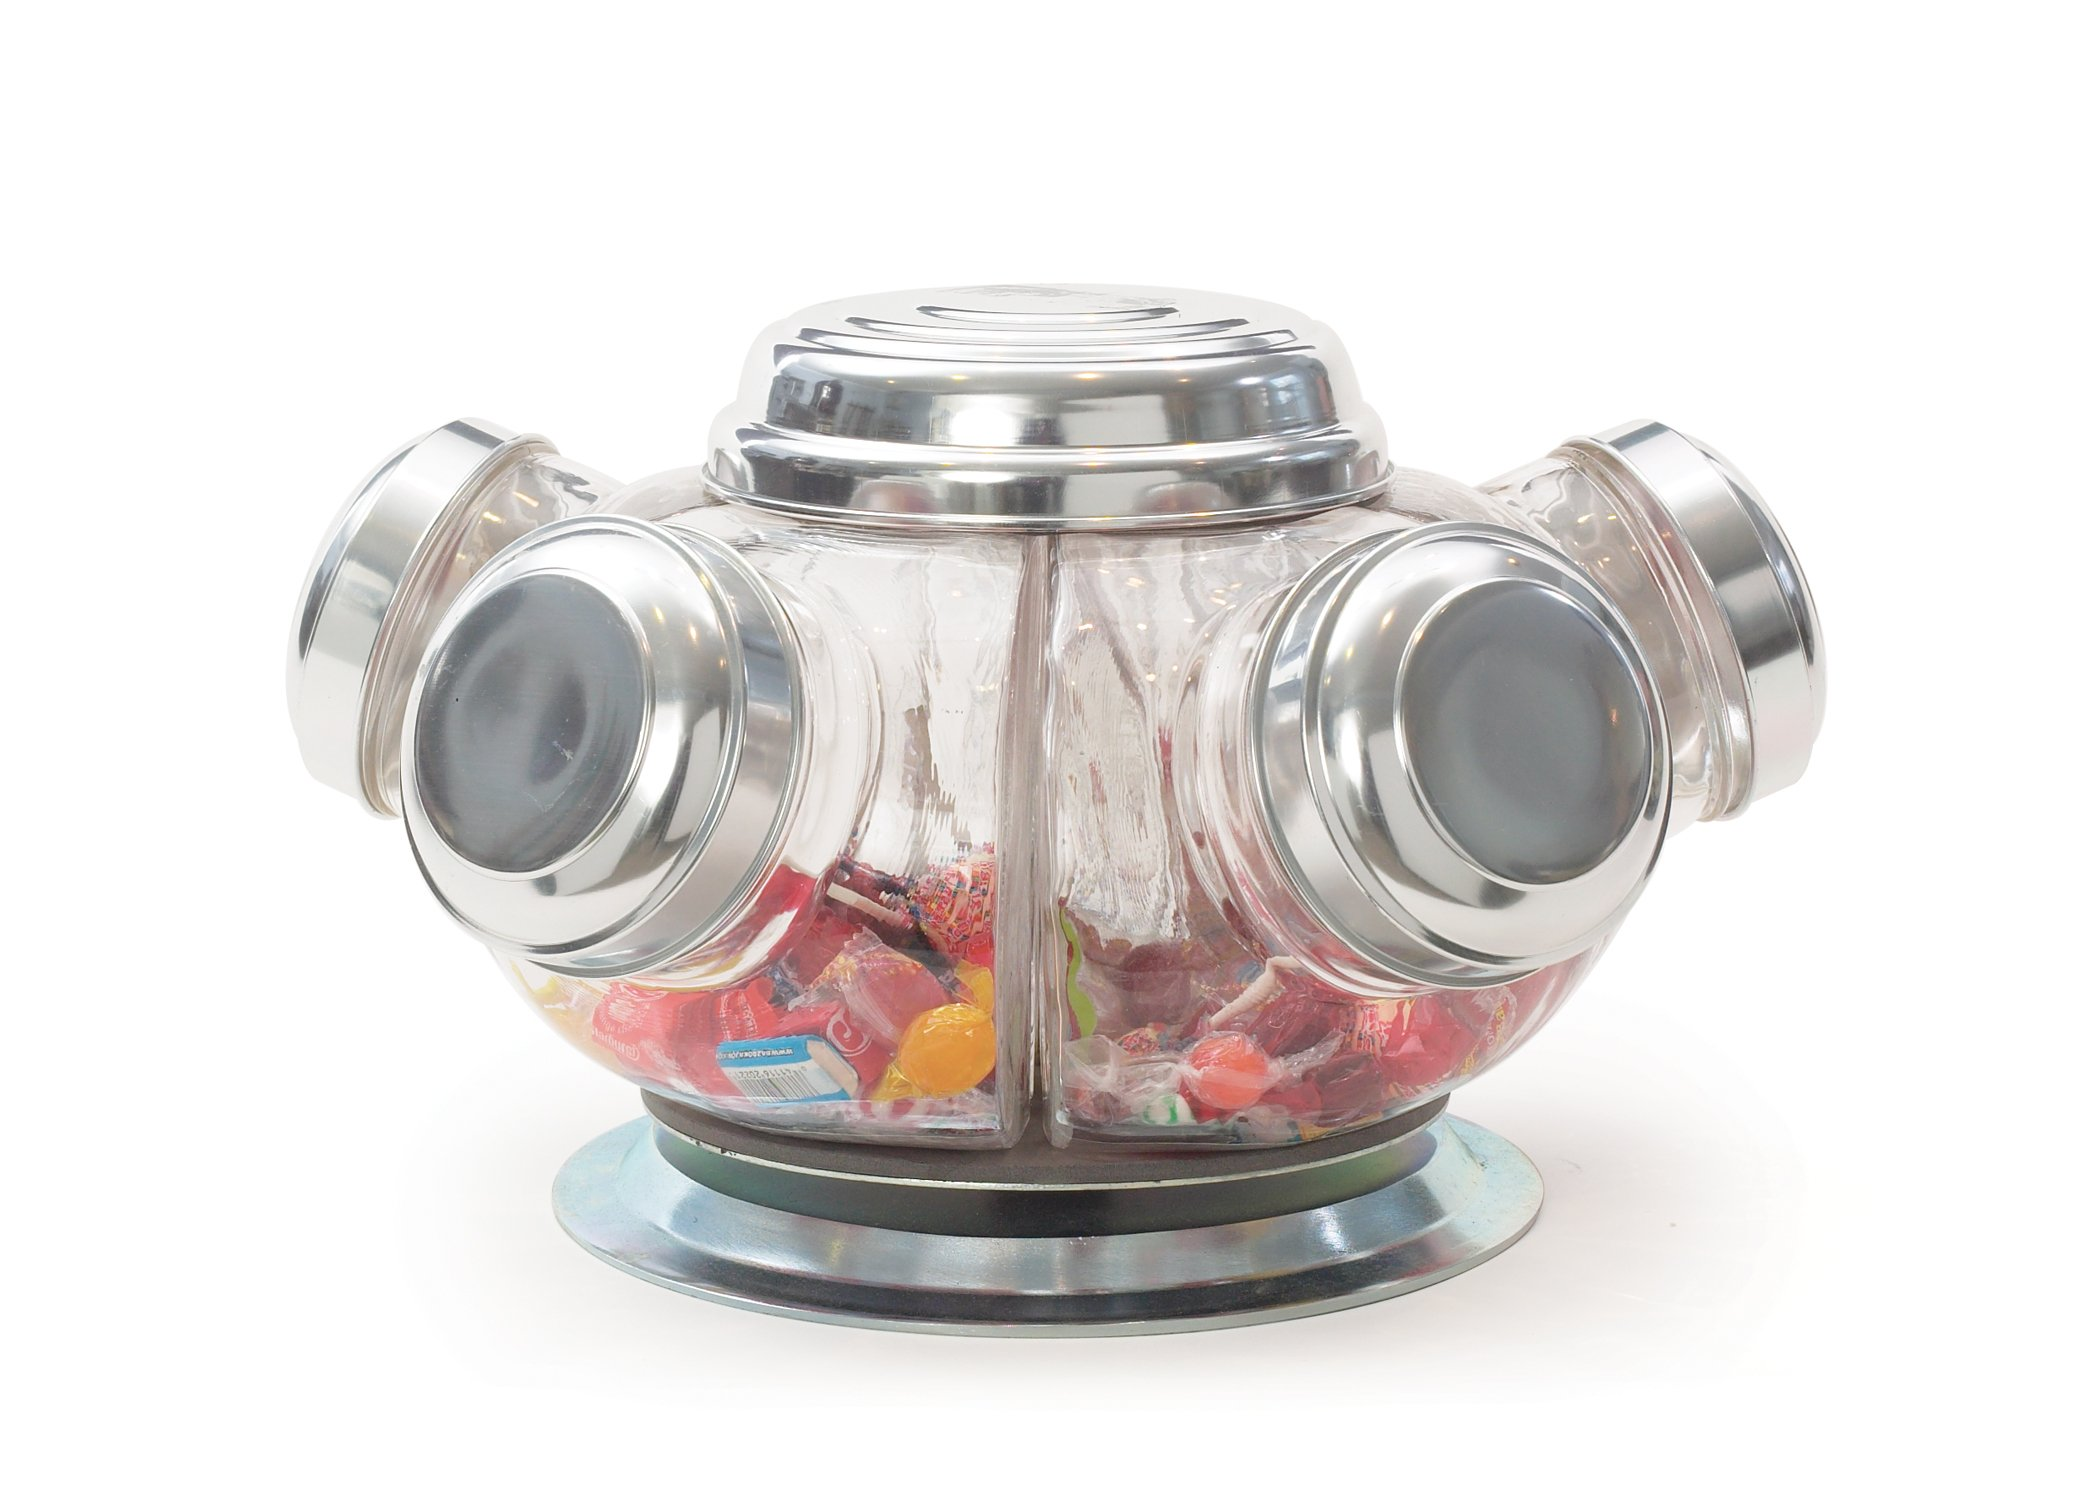 GO Home 11027 Vintage Revolving Candy Jars by Go Home